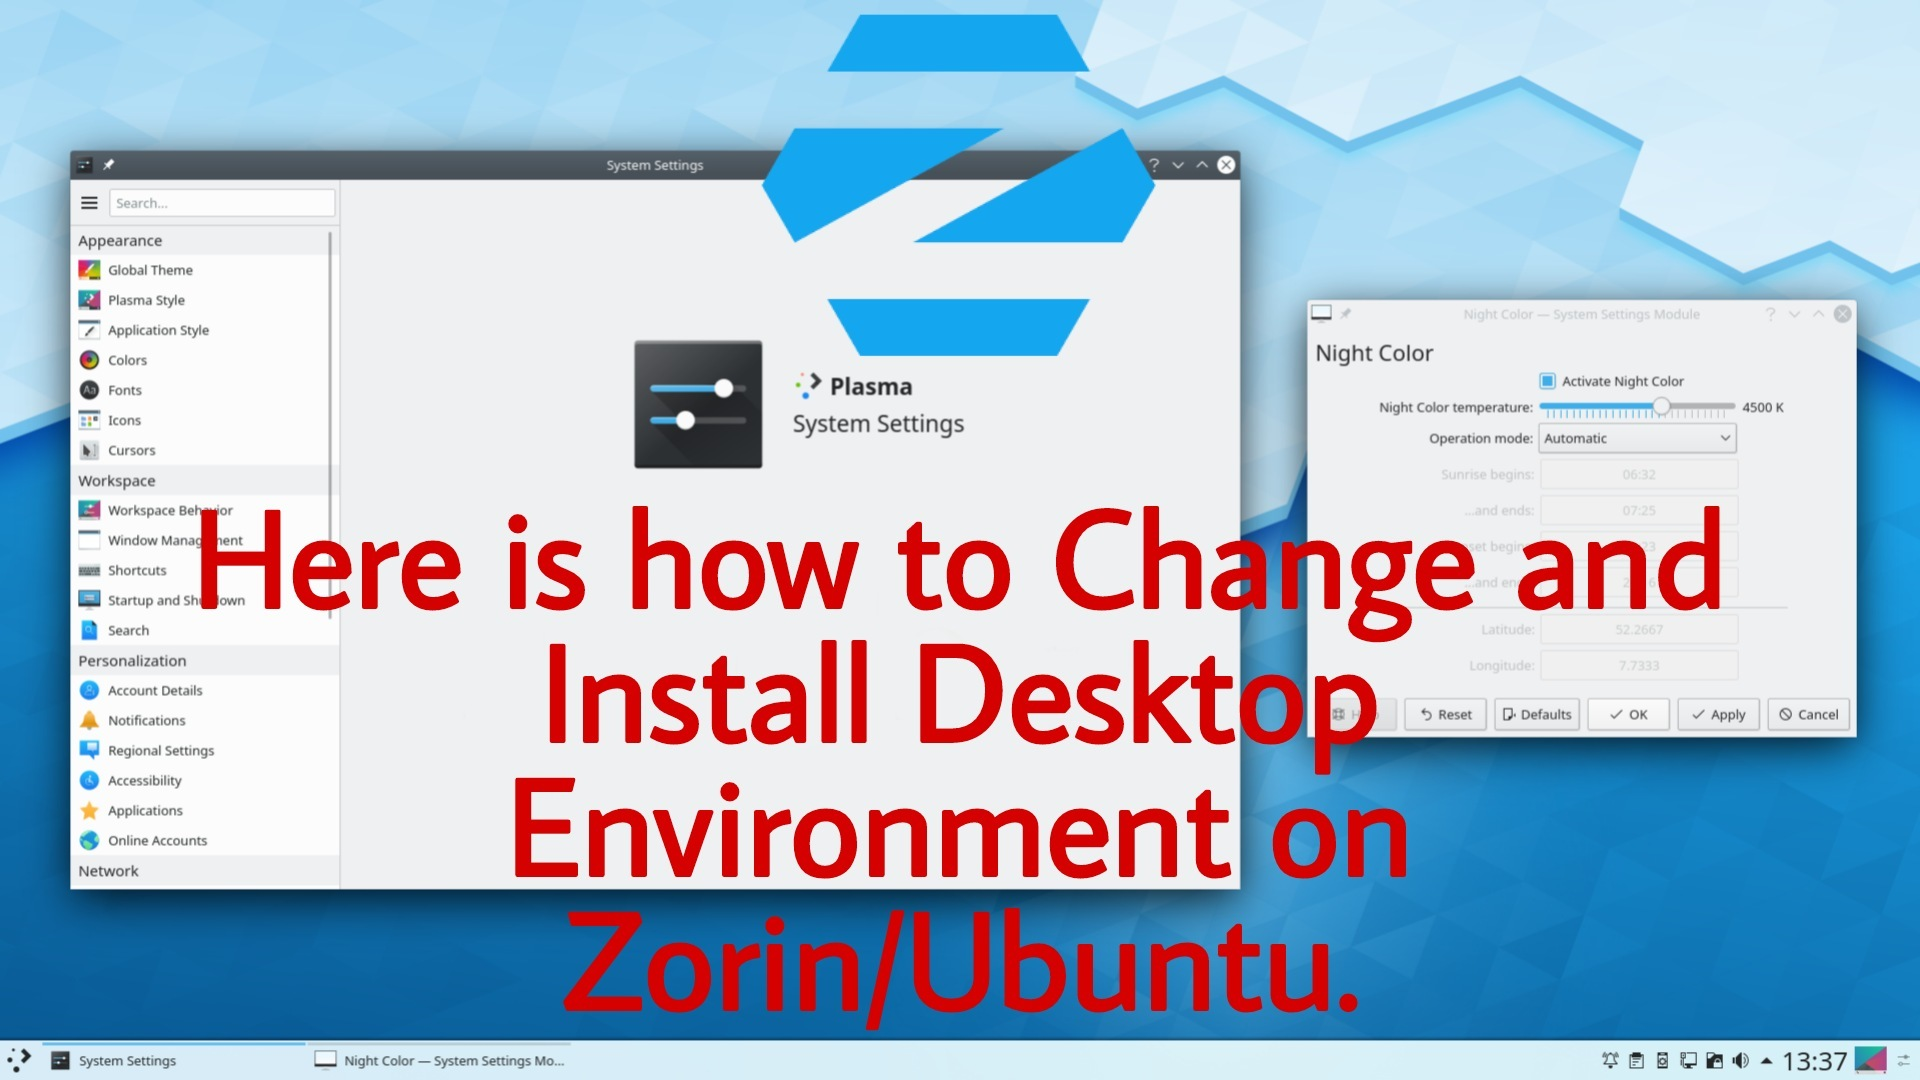 Change and Install Desktop Environment on Zorin Os or Ubuntu